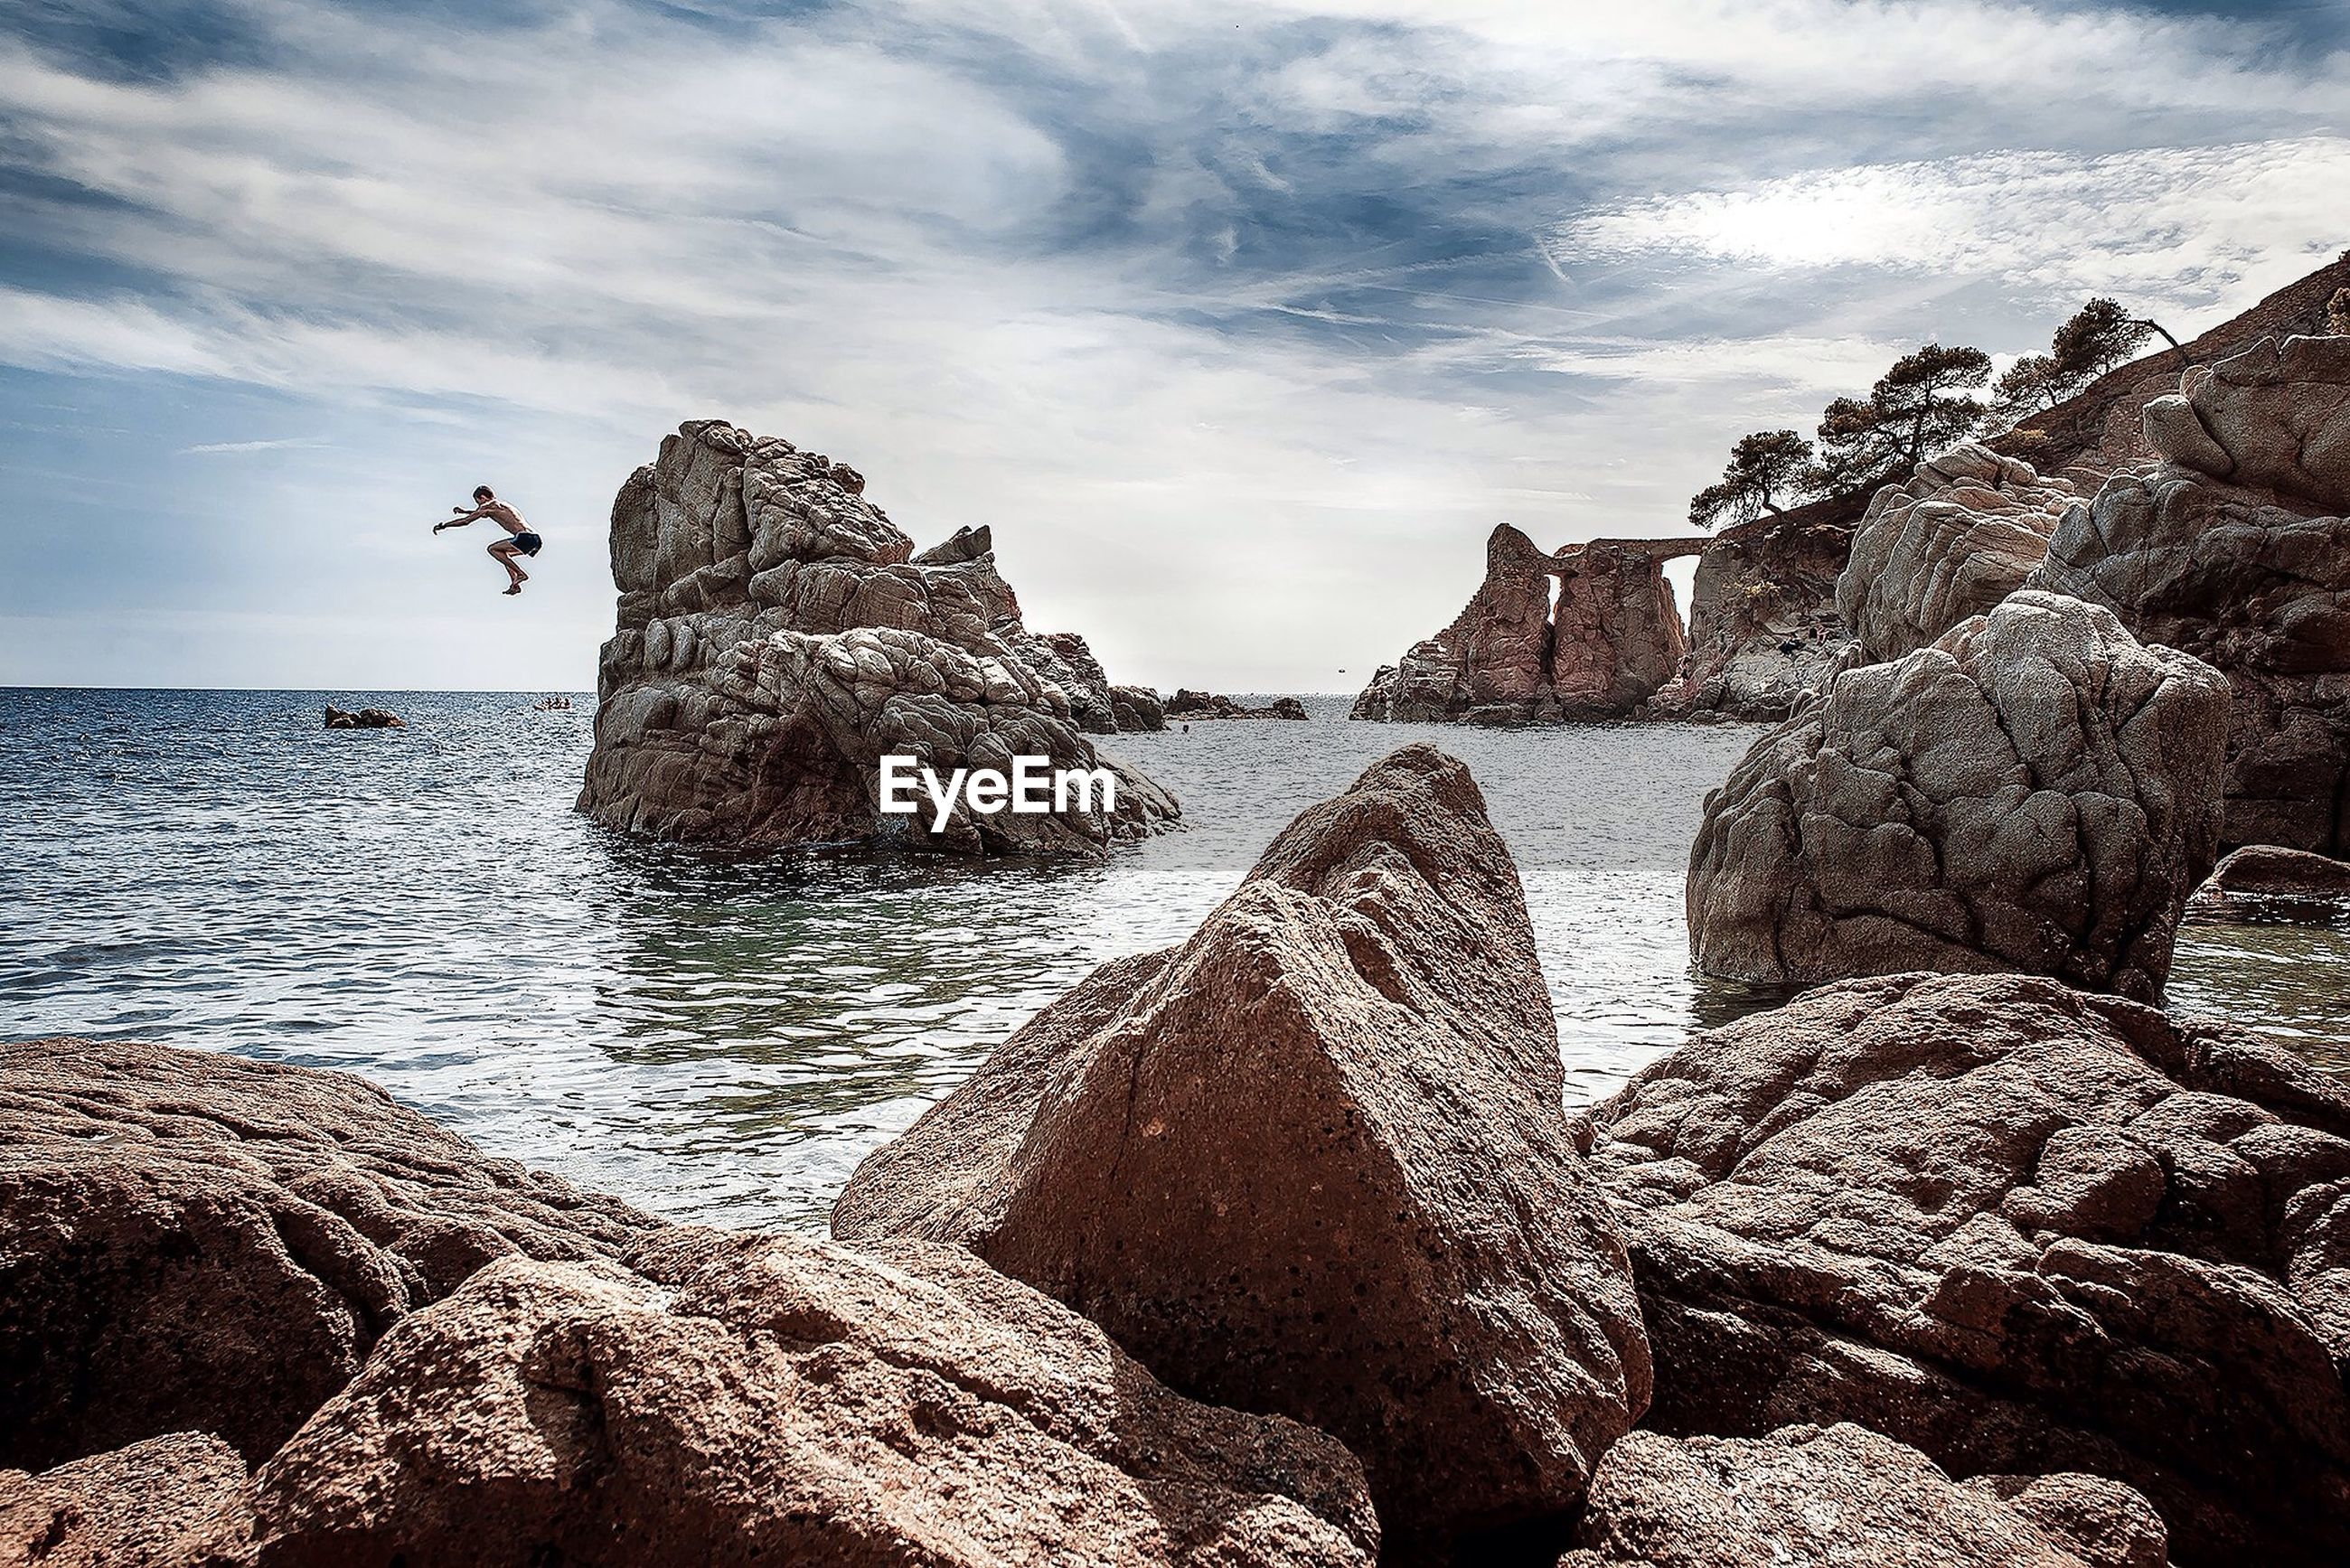 Young man jumping from rock into sea